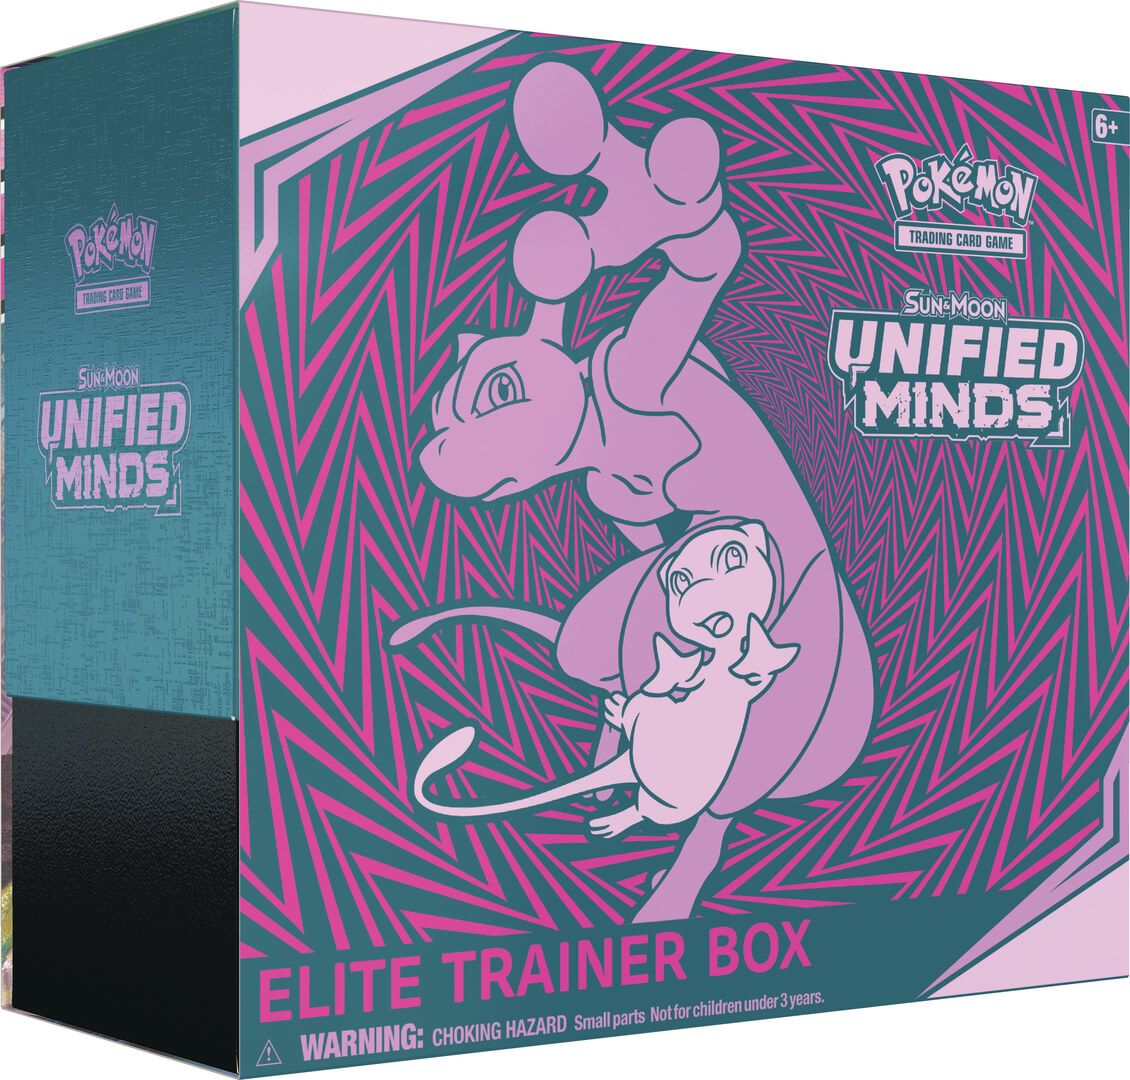 Sun & Moon Unified Minds - Elite Trainer